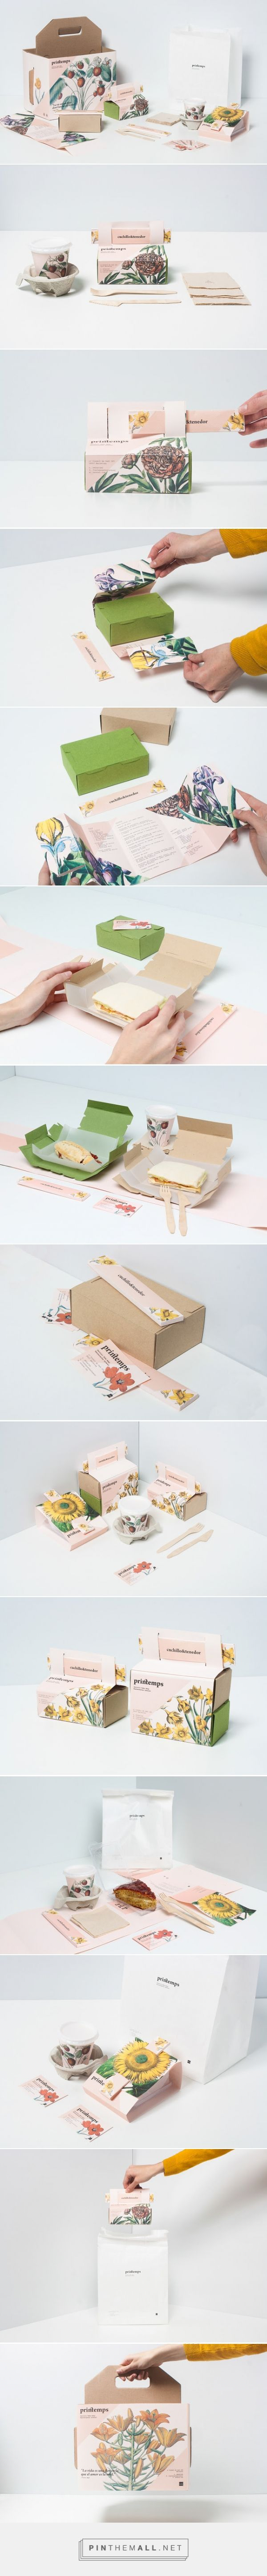 Printemps Take Away packaging concept designed by Nat Tattaglia, Eli García & Olaya Pintado.